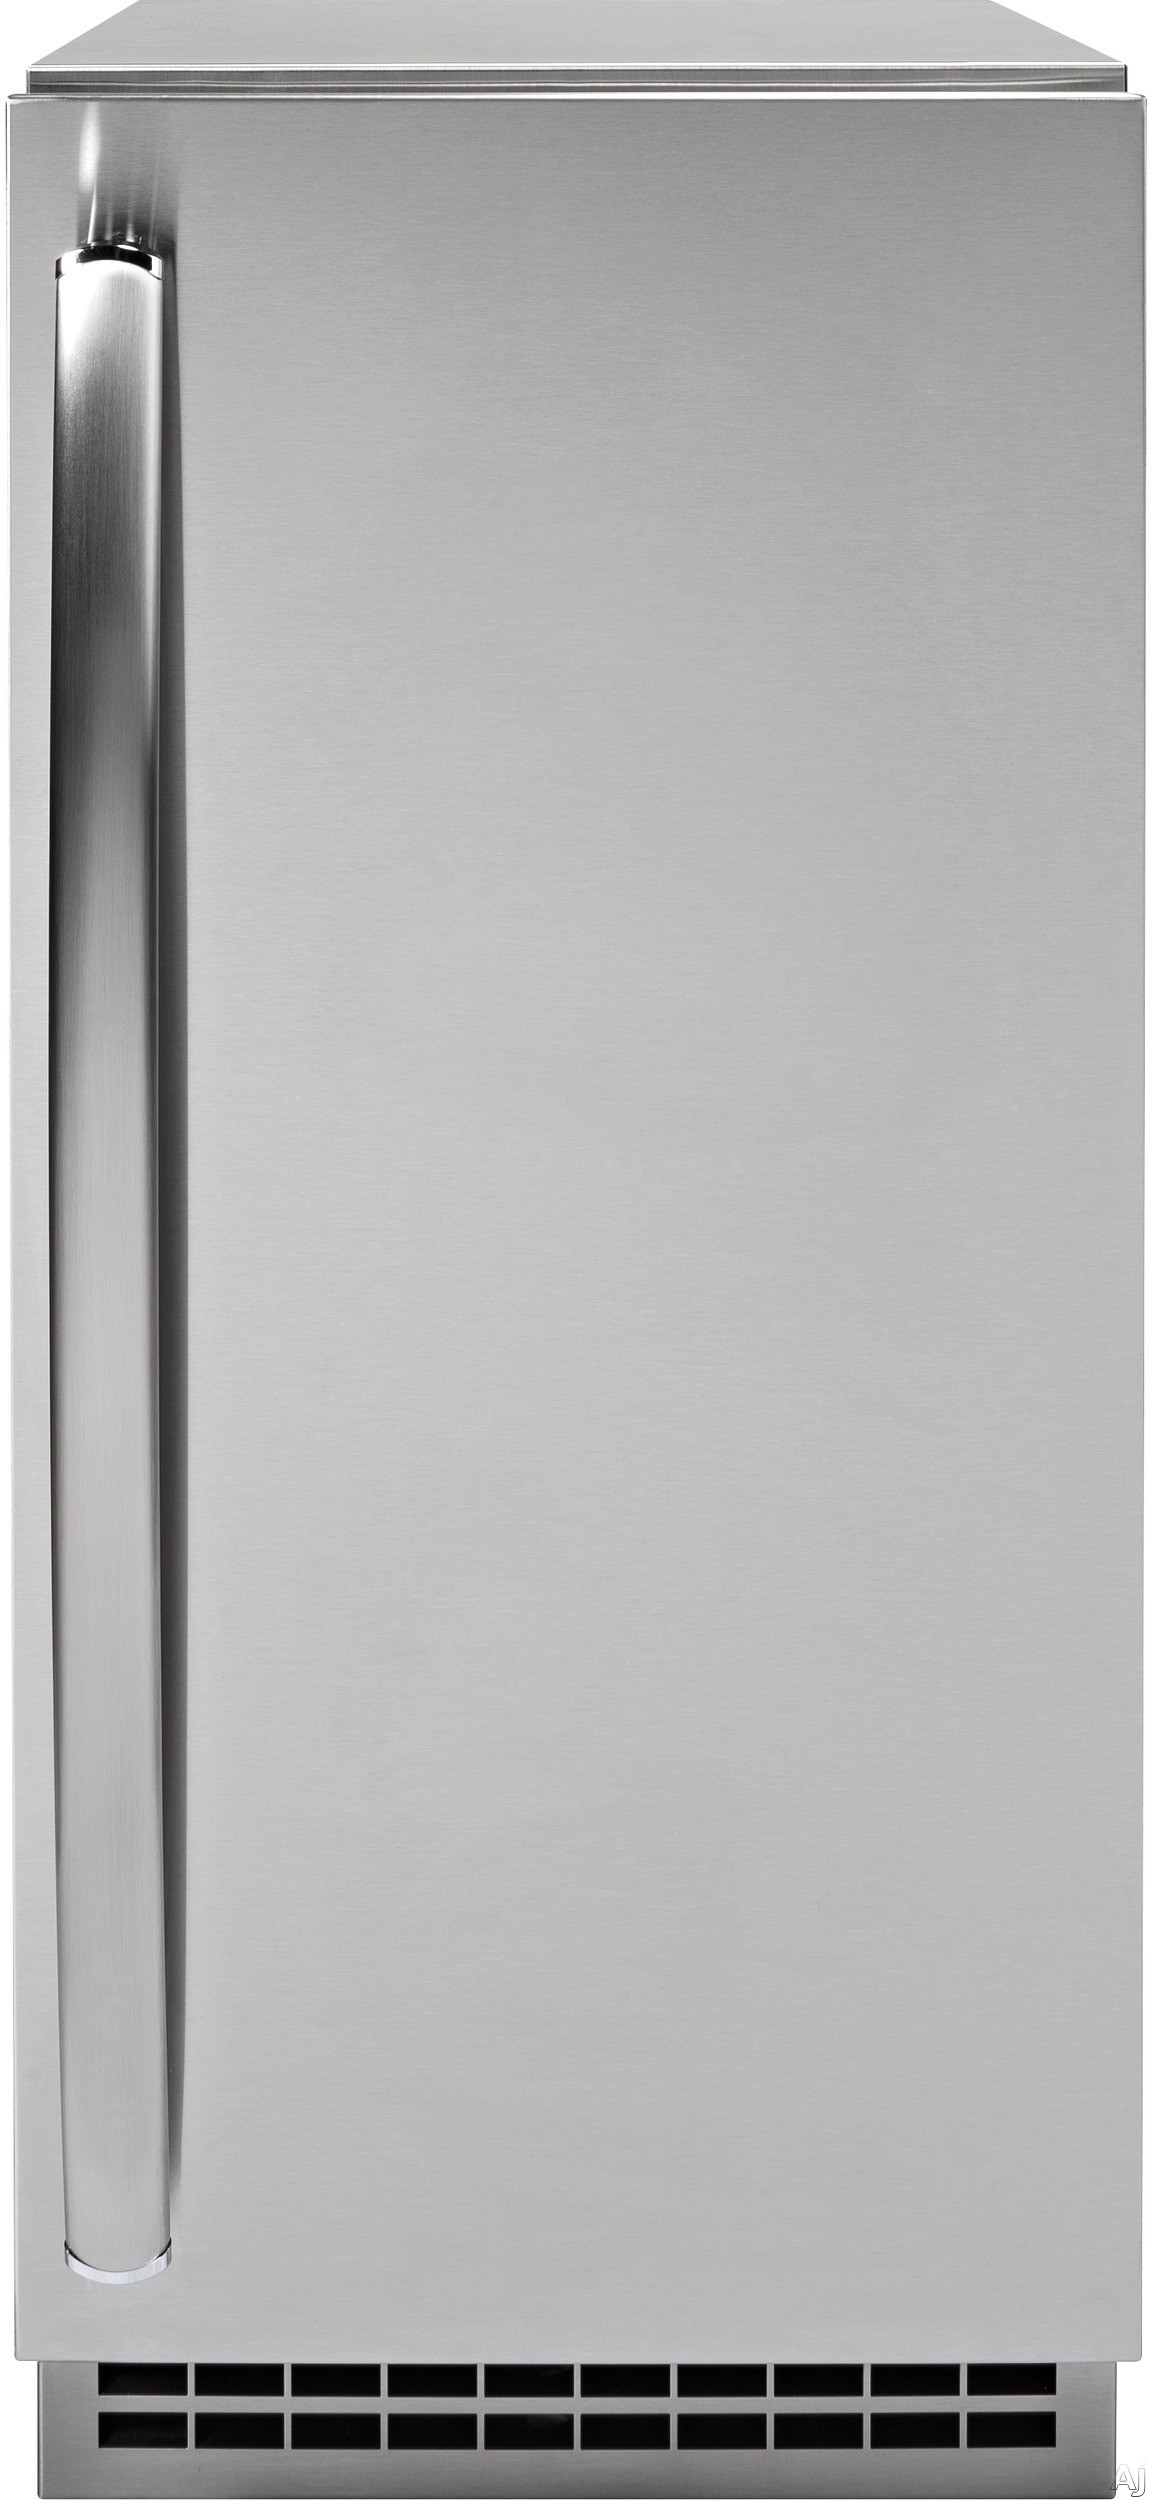 GE UNC15NJII 15 Inch Panel Ready Freestanding/Built-In